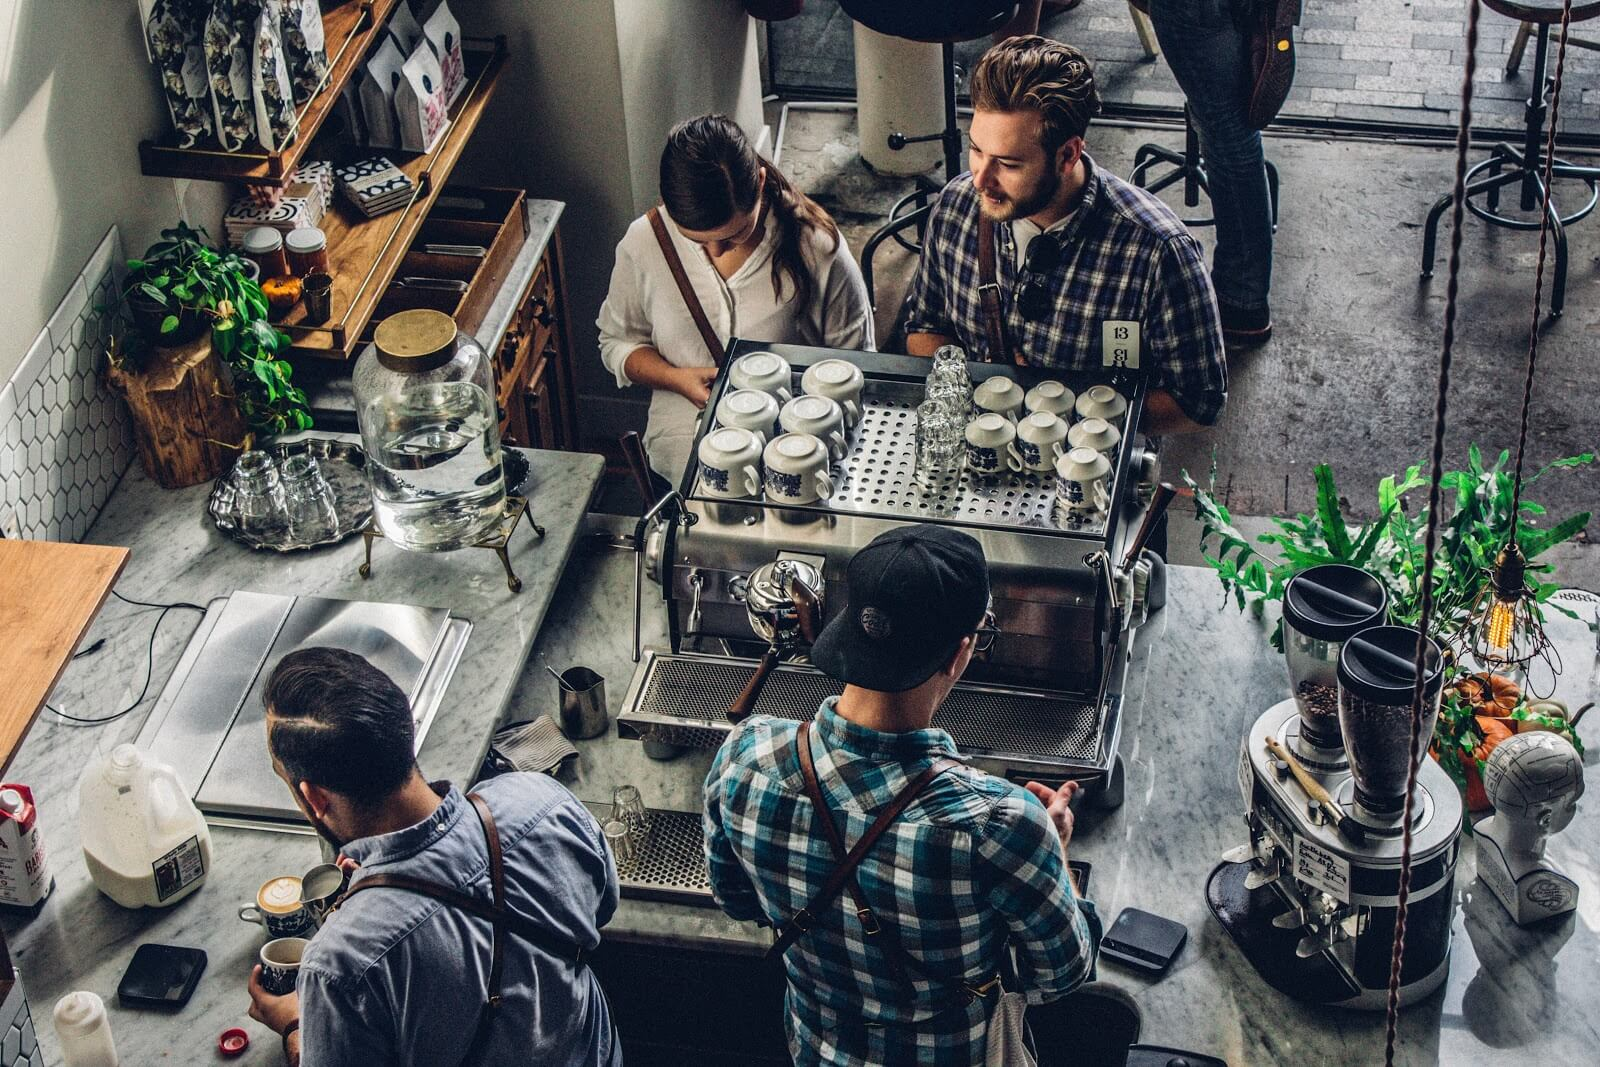 Small business grants: overhead shot of a busy coffee shop